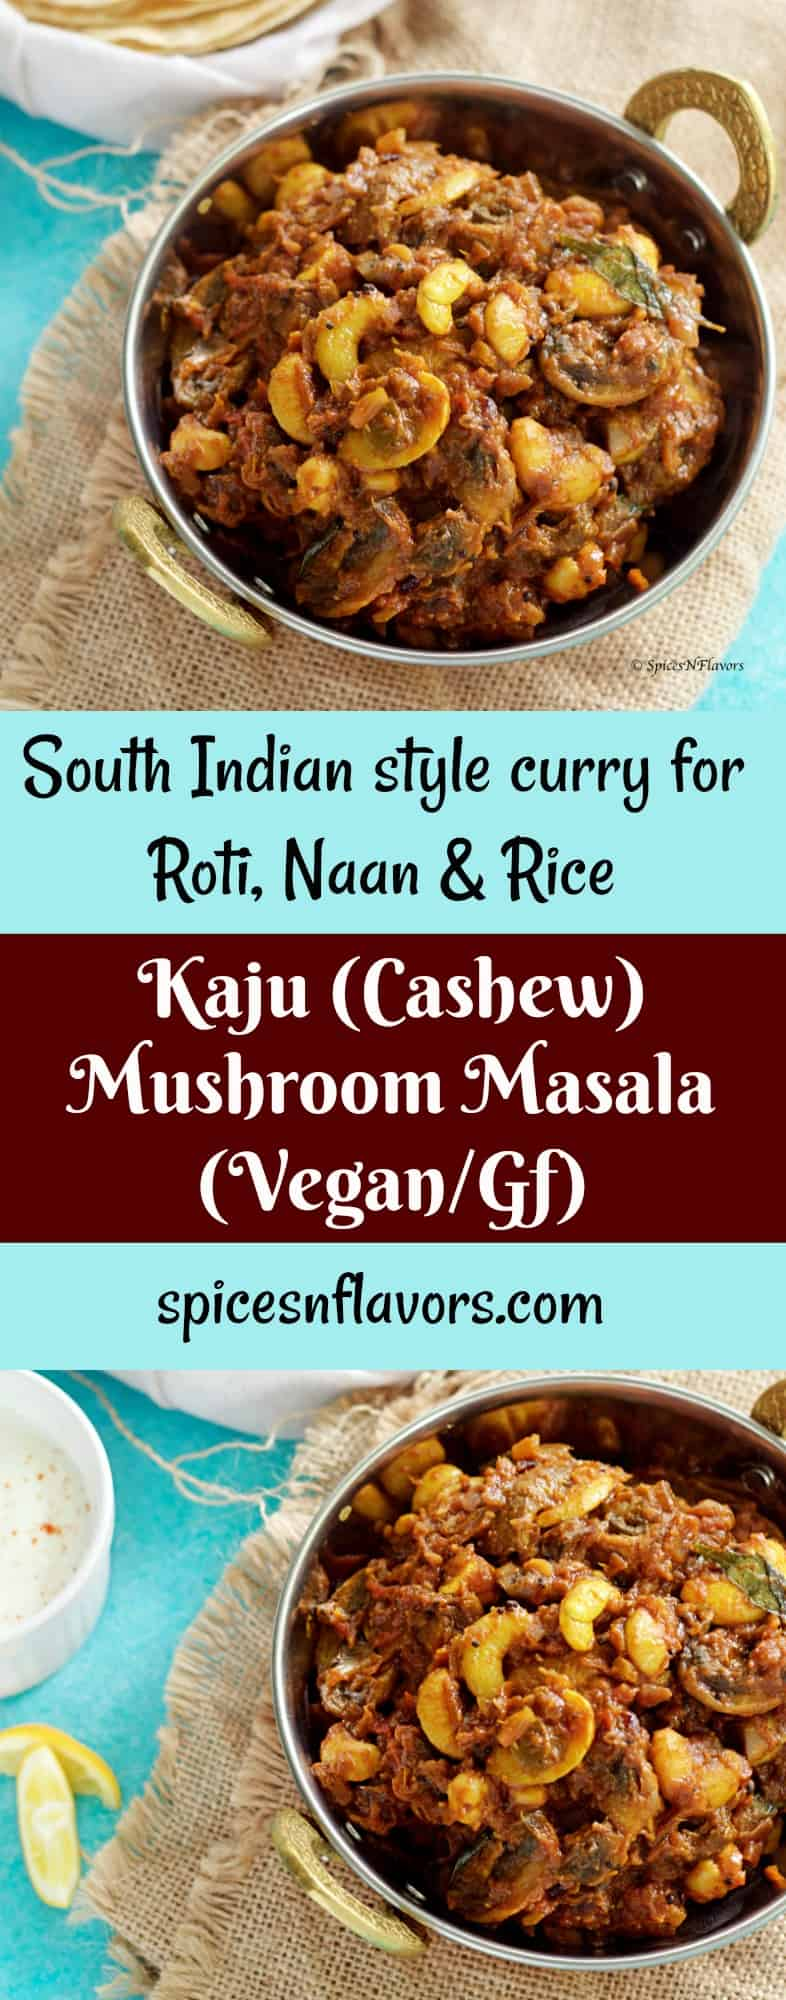 kaju-mushroom-masala- south-indian-style-curry indian masala mushroom photography roti rice naan vegan gluten free paleo recipes